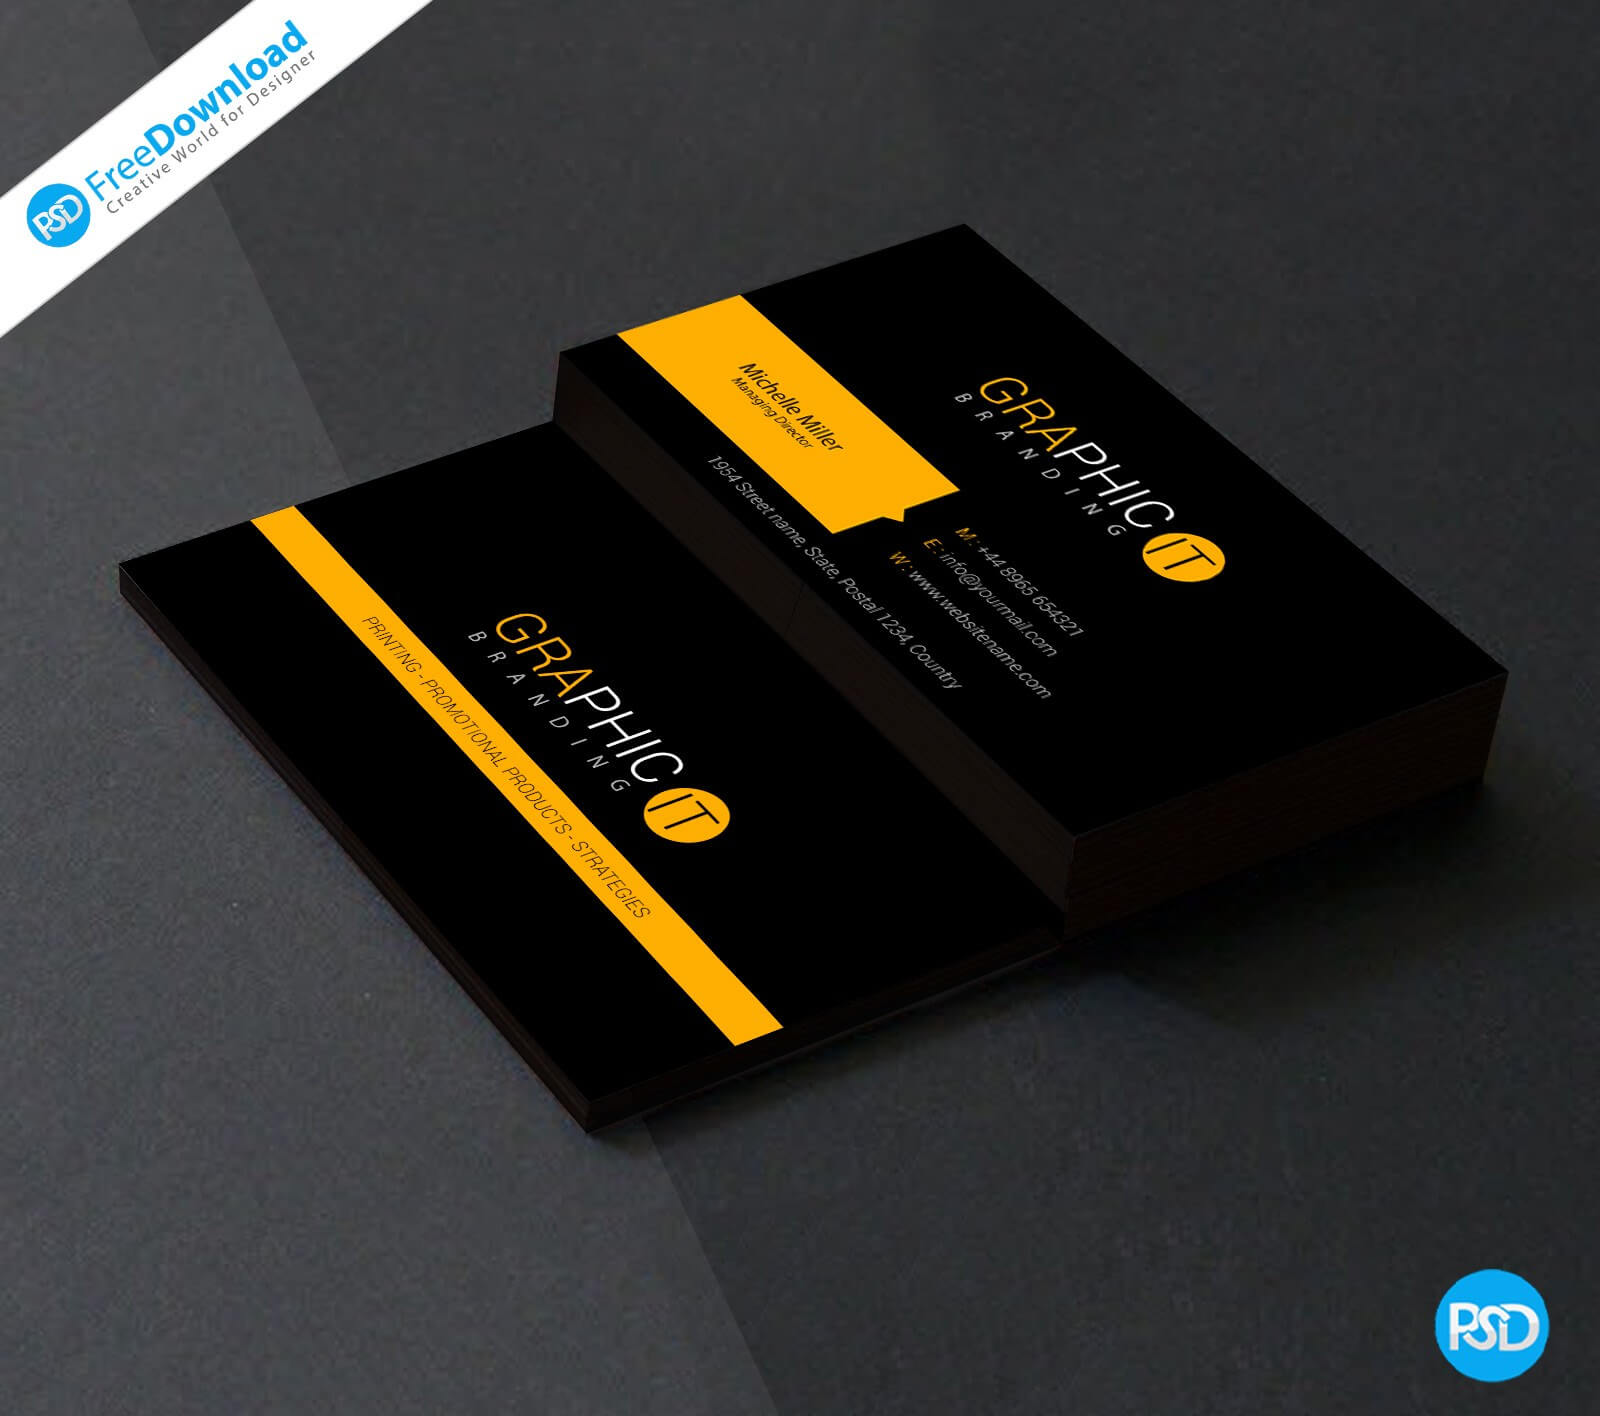 009 Template Ideas Photography Visiting Card Design Psd File Throughout Name Card Template Psd Free Download